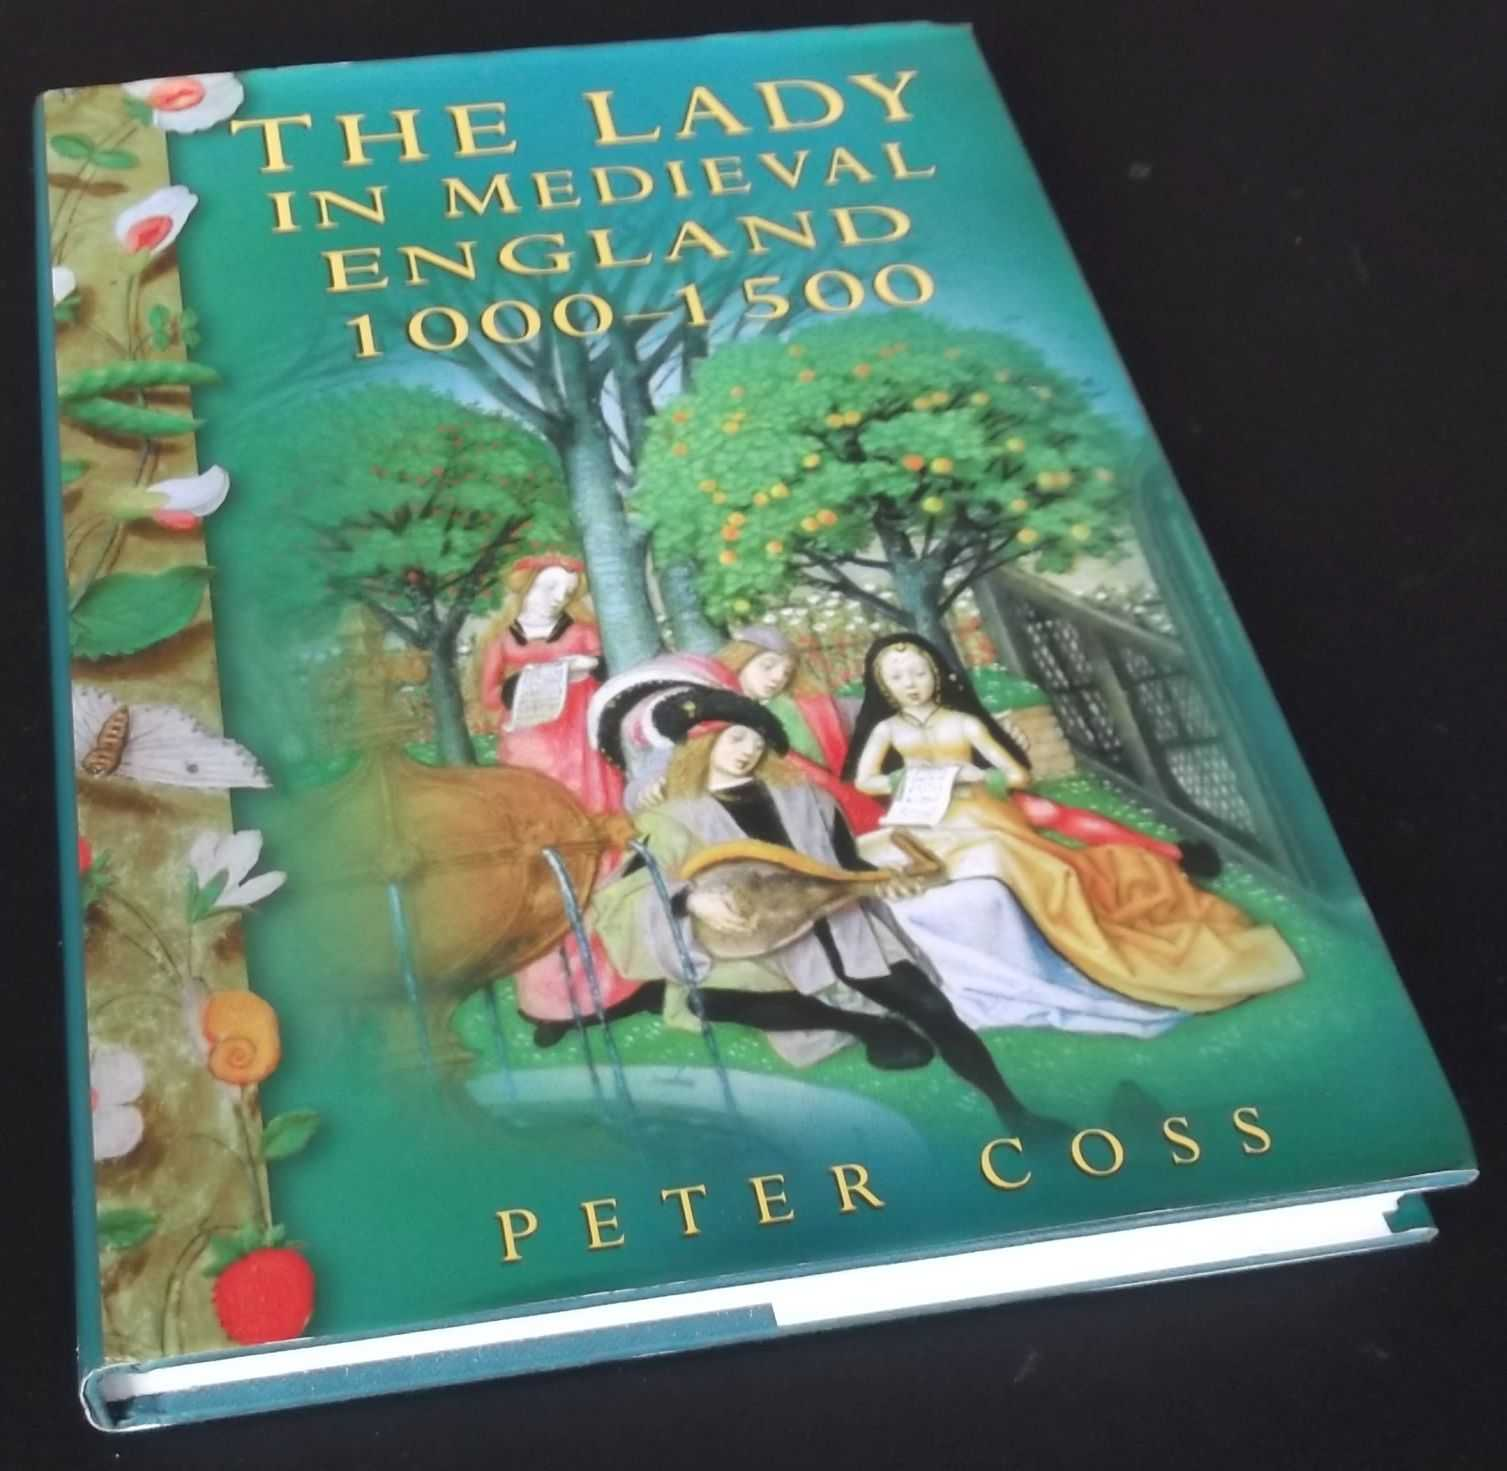 PETER COSS - The Lady in Medieval England, 1000-1500